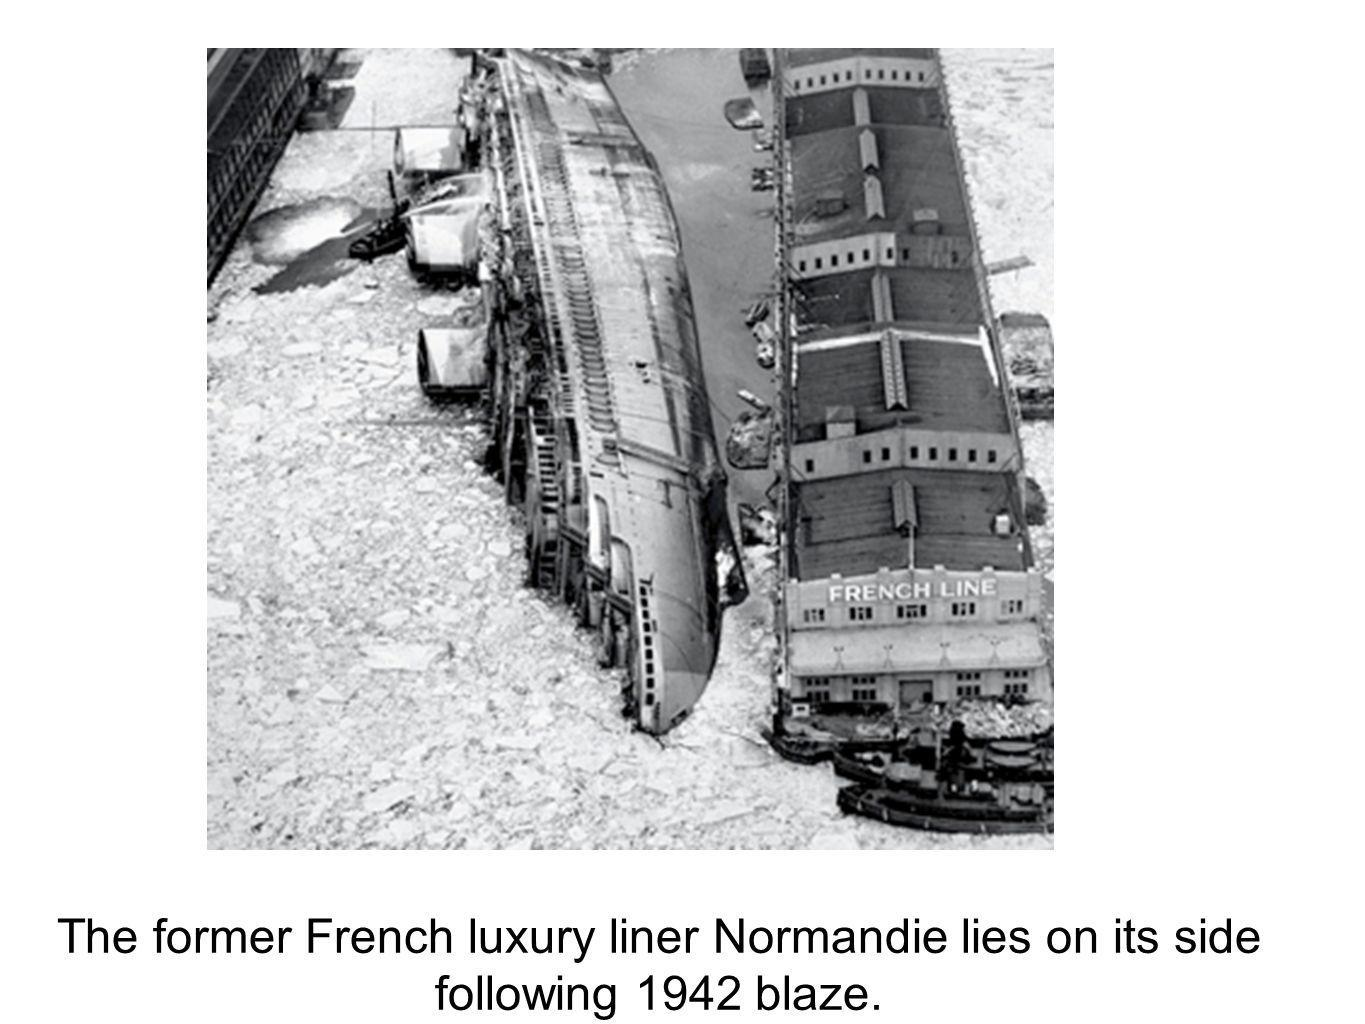 The former French luxury liner Normandie lies on its side following 1942 blaze.